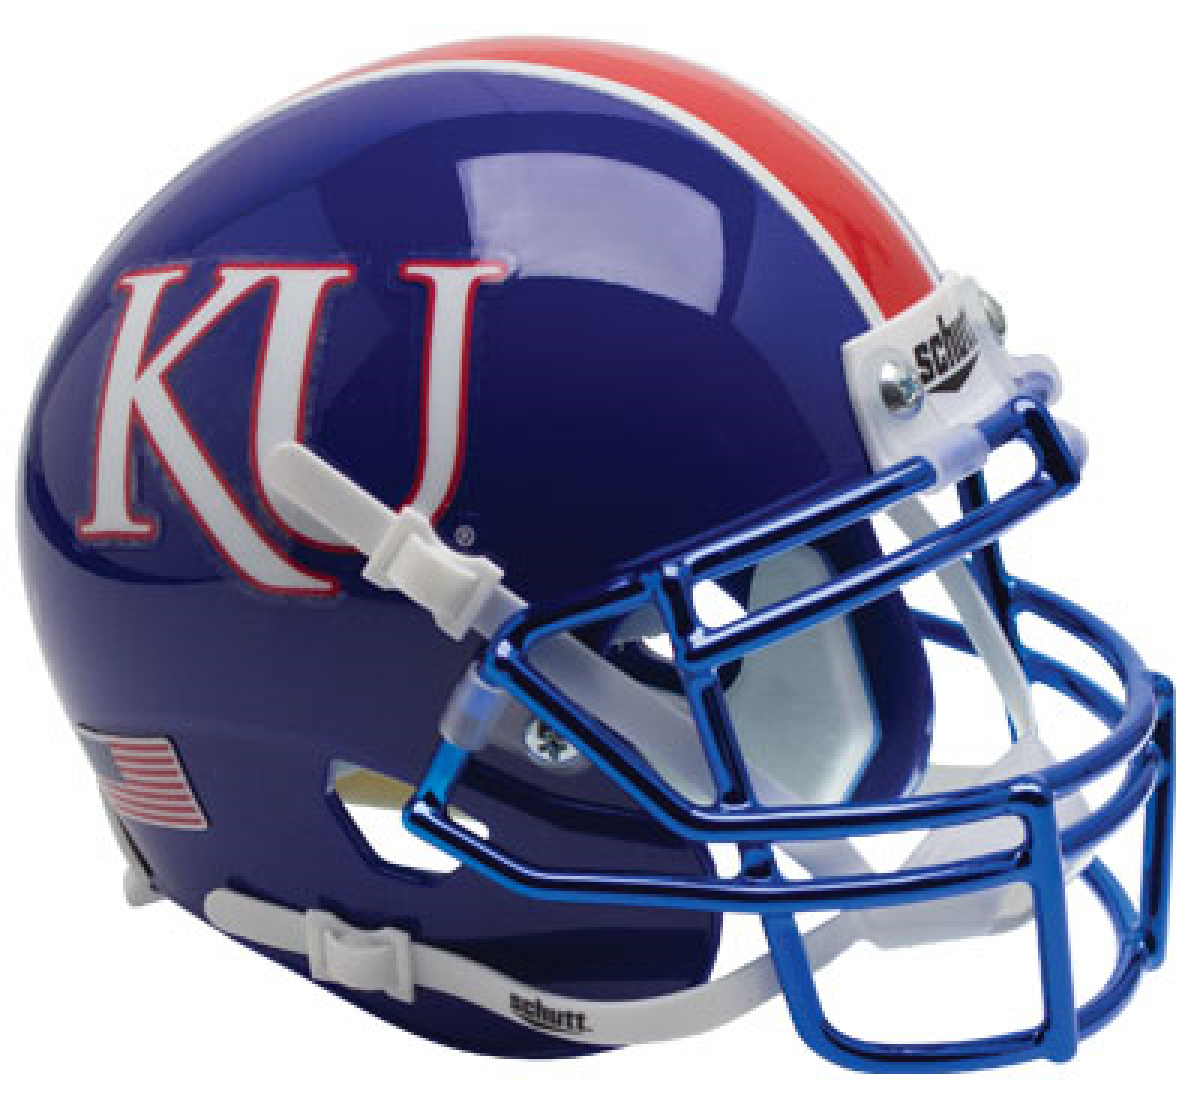 Kansas Jayhawks Miniature Football Helmet Desk Caddy <B>Blue with Chrome Mask</B>